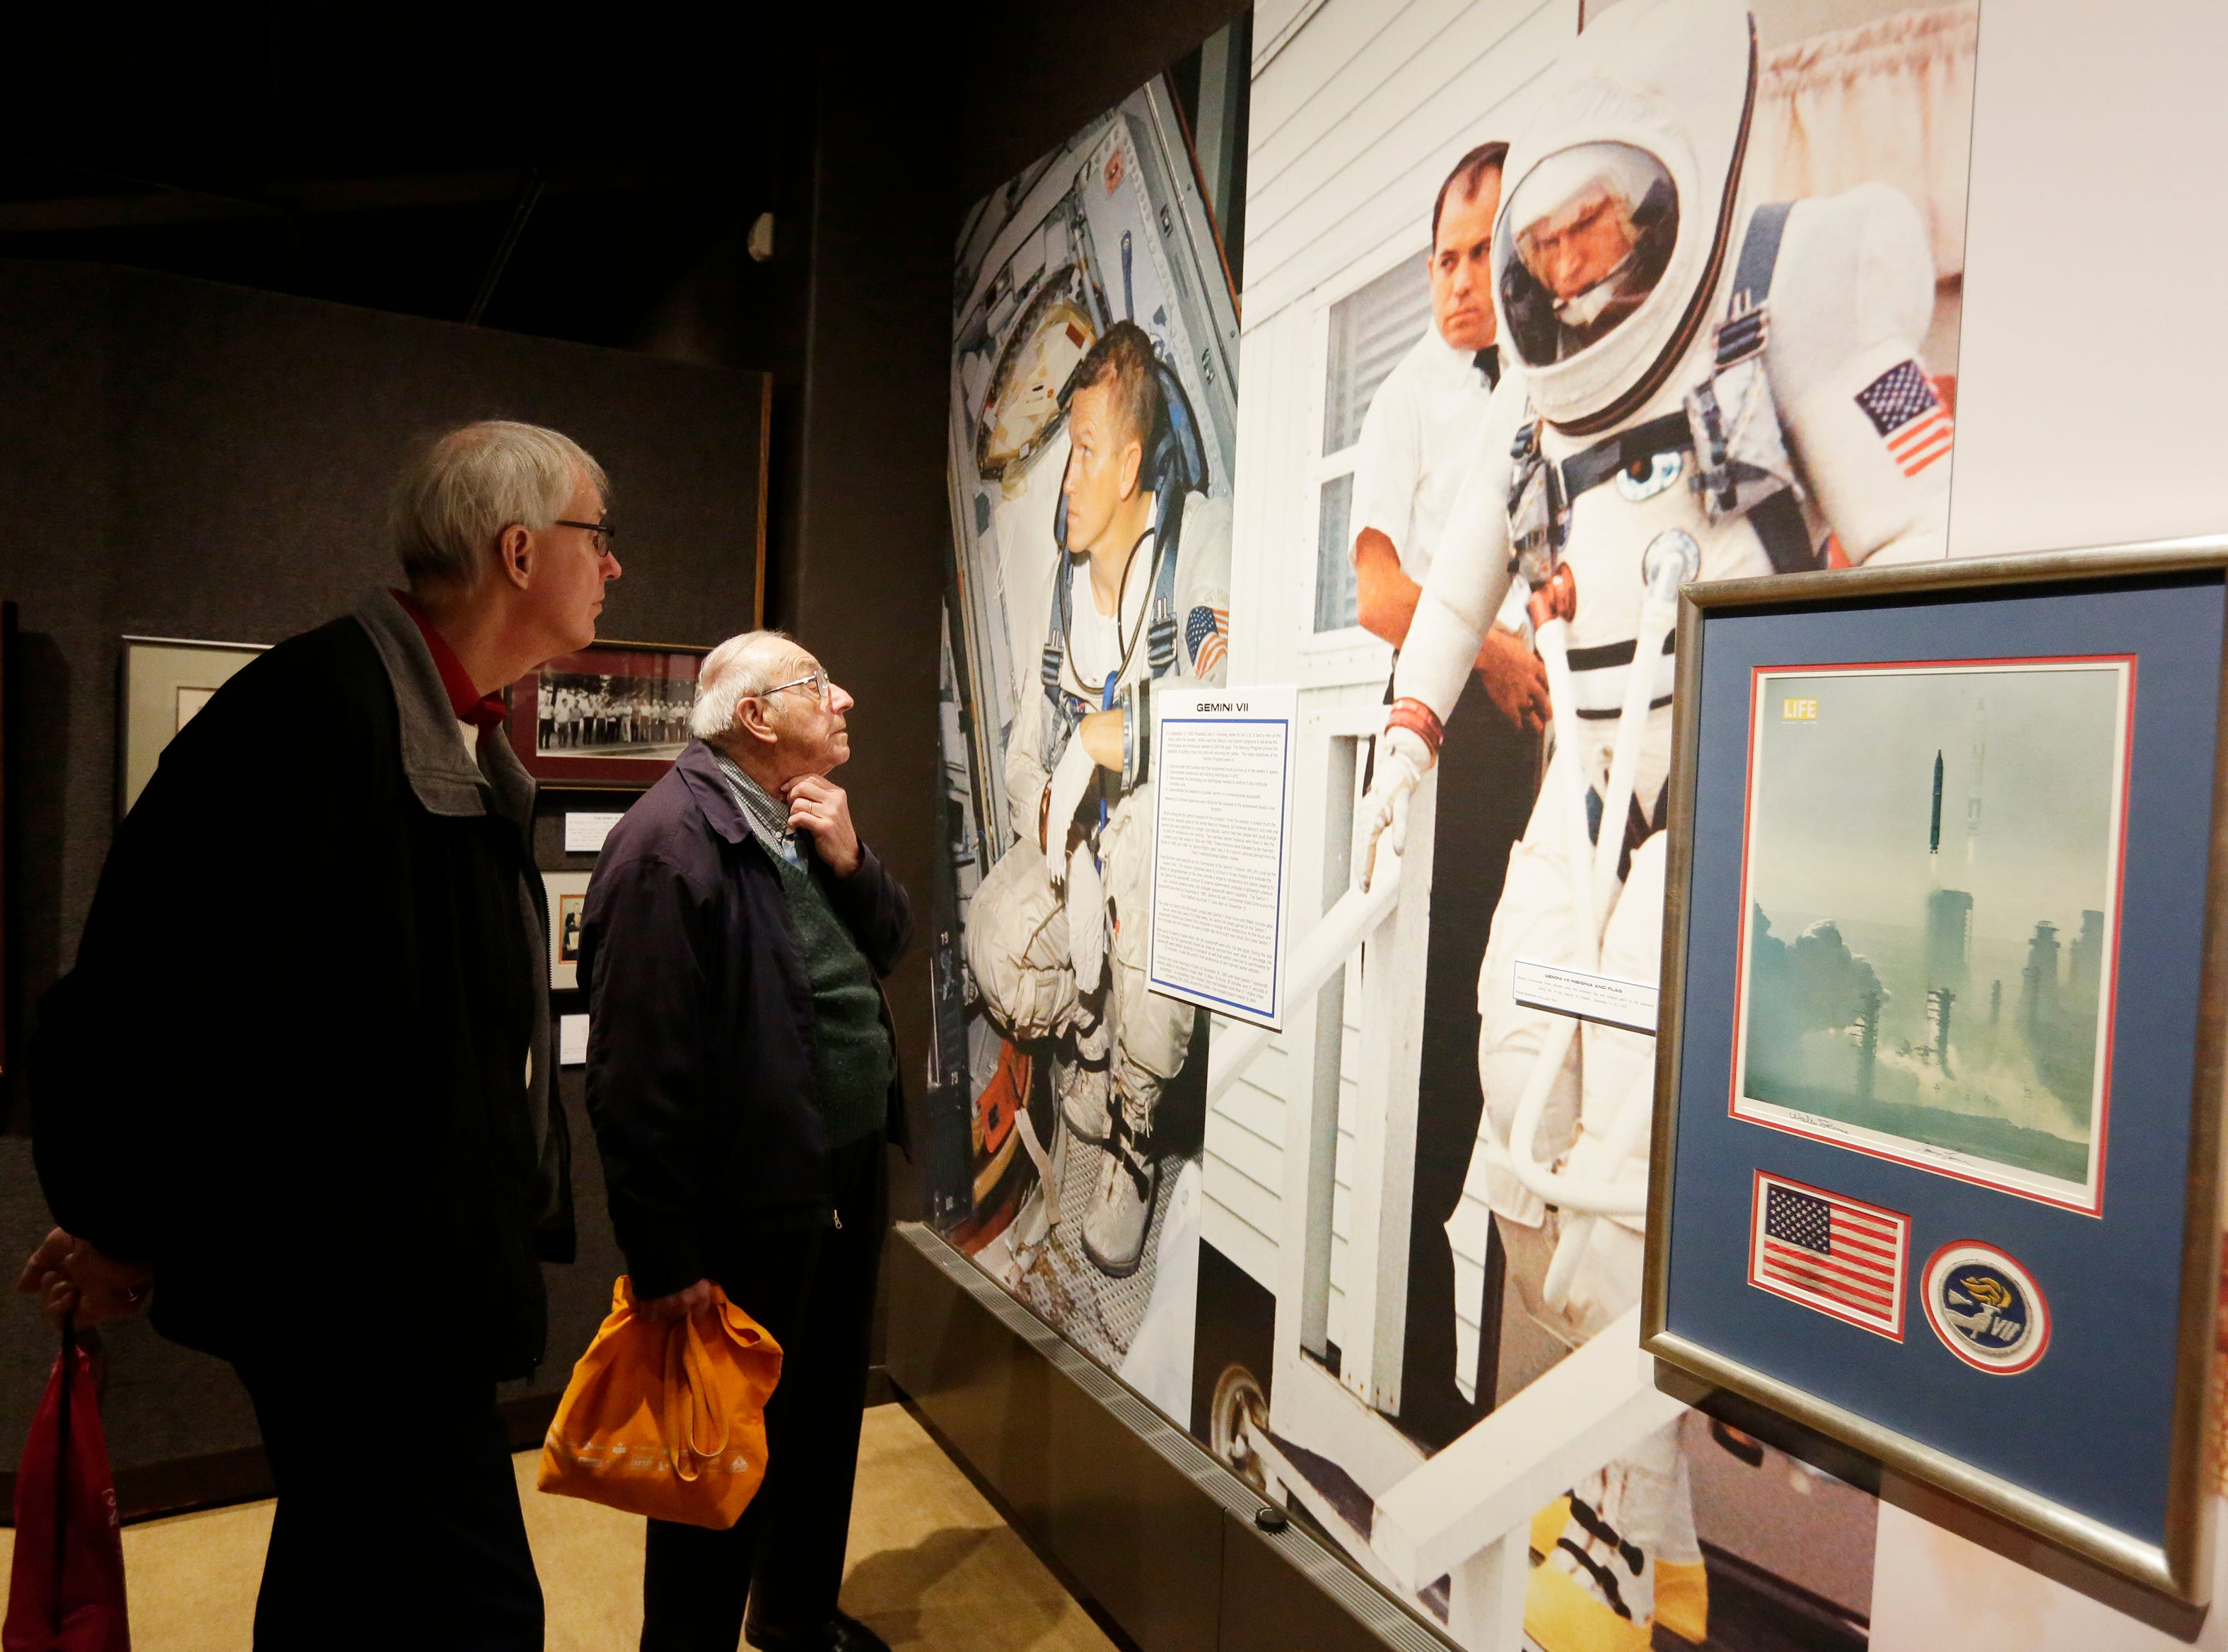 """Dale Rindfleisch and his son Dave Rindfleisch look over the exhibit.  The EAA Aviation Museum in Oshkosh, Wis. has opened """"The Borman Collection: An EAA Member's Space Odyssey,"""" an exhibit that features the personal archives and memorabilia of astronaut Frank Borman, who was on the leading edge of America's space program through the 1960s. The new exhibit was formally opened with a ribbon cutting by Borman on Friday, December 7, 2018.Joe Sienkiewicz/USA Today NETWORK-Wisconsin"""